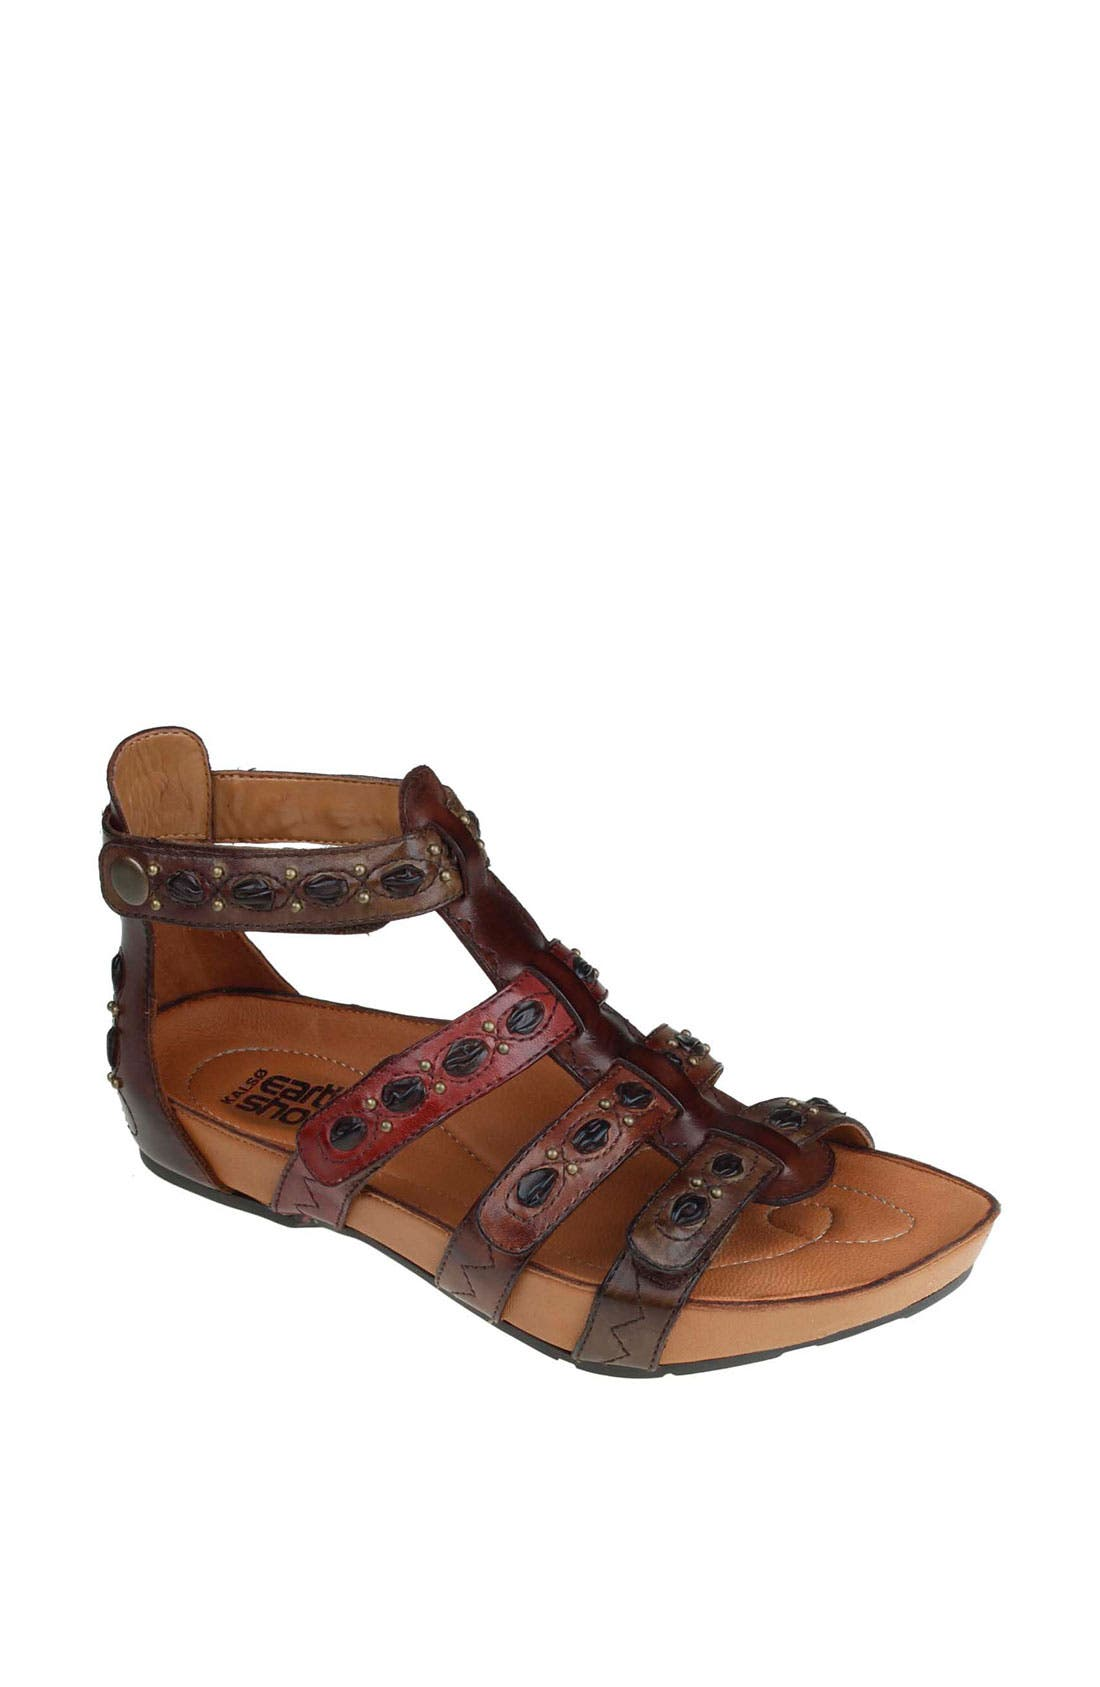 Alternate Image 1 Selected - Kalso Earth® 'Empire' Sandal